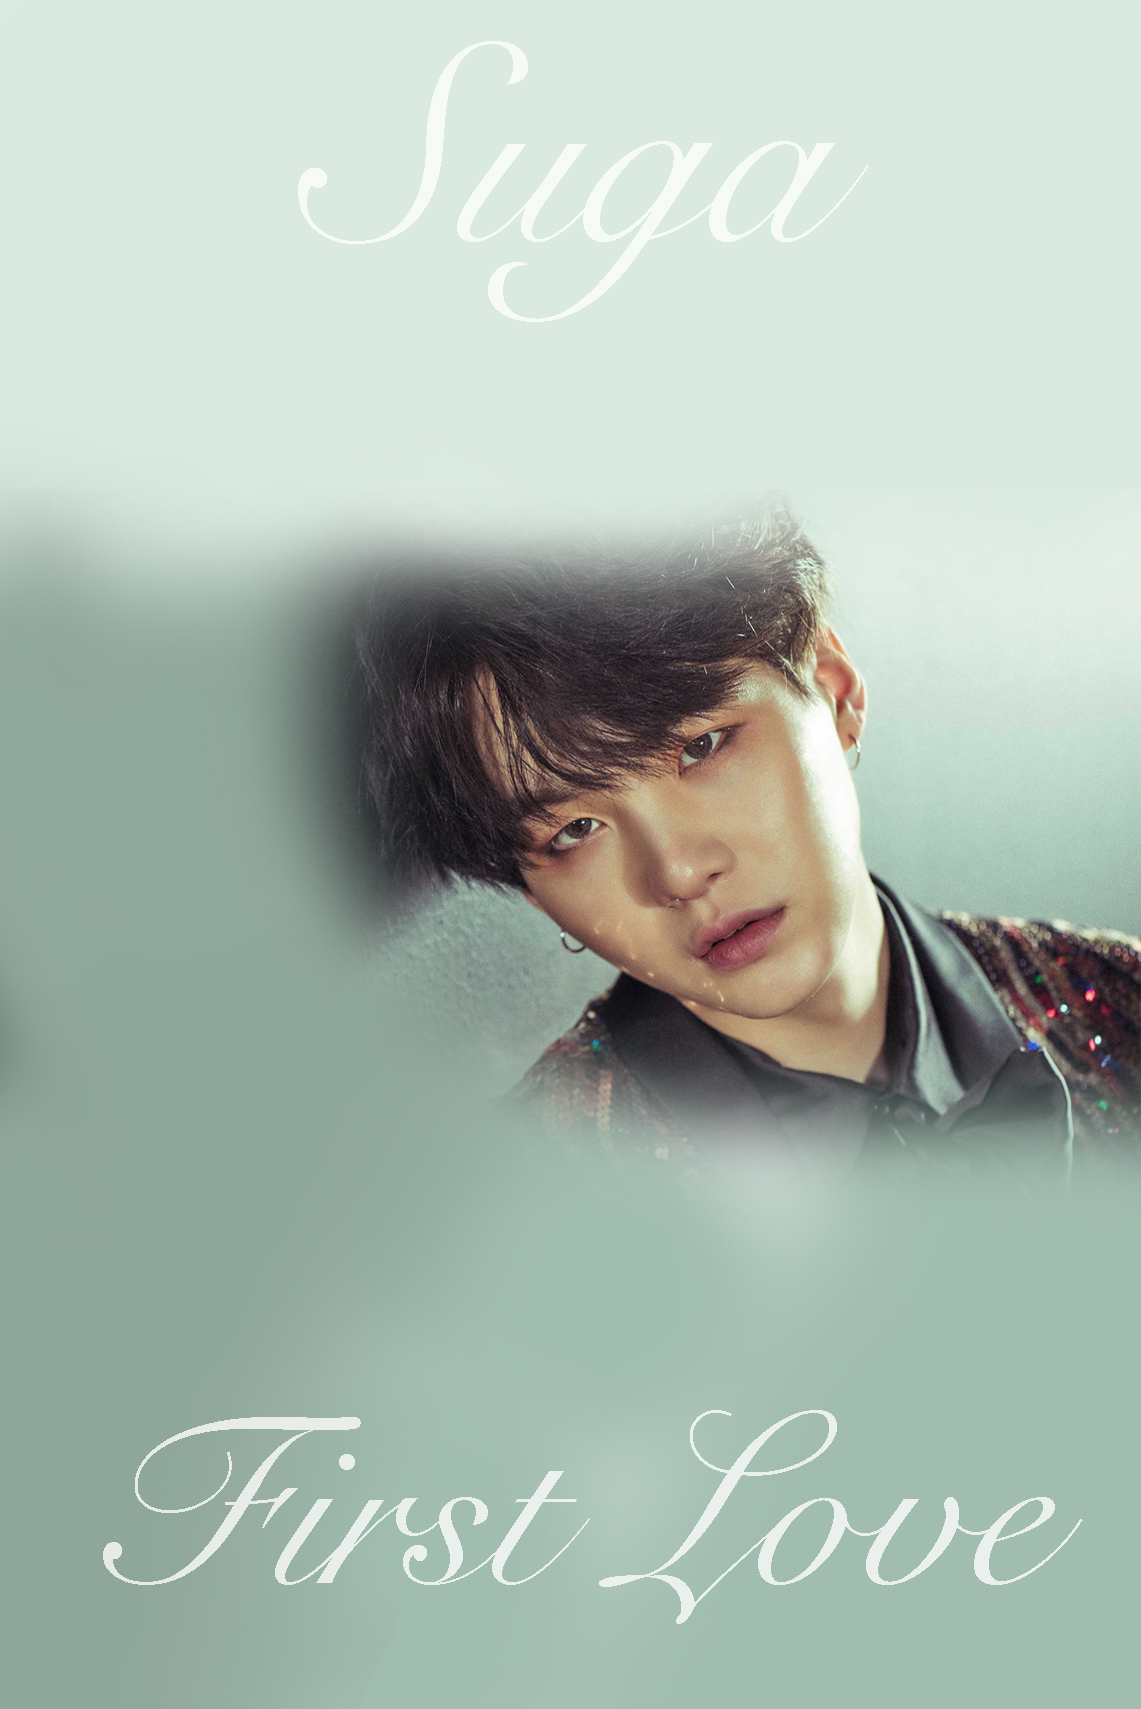 BTS-Suga-Bangtan-Boys-Min-Yoongi-wallpaper-wp6001216